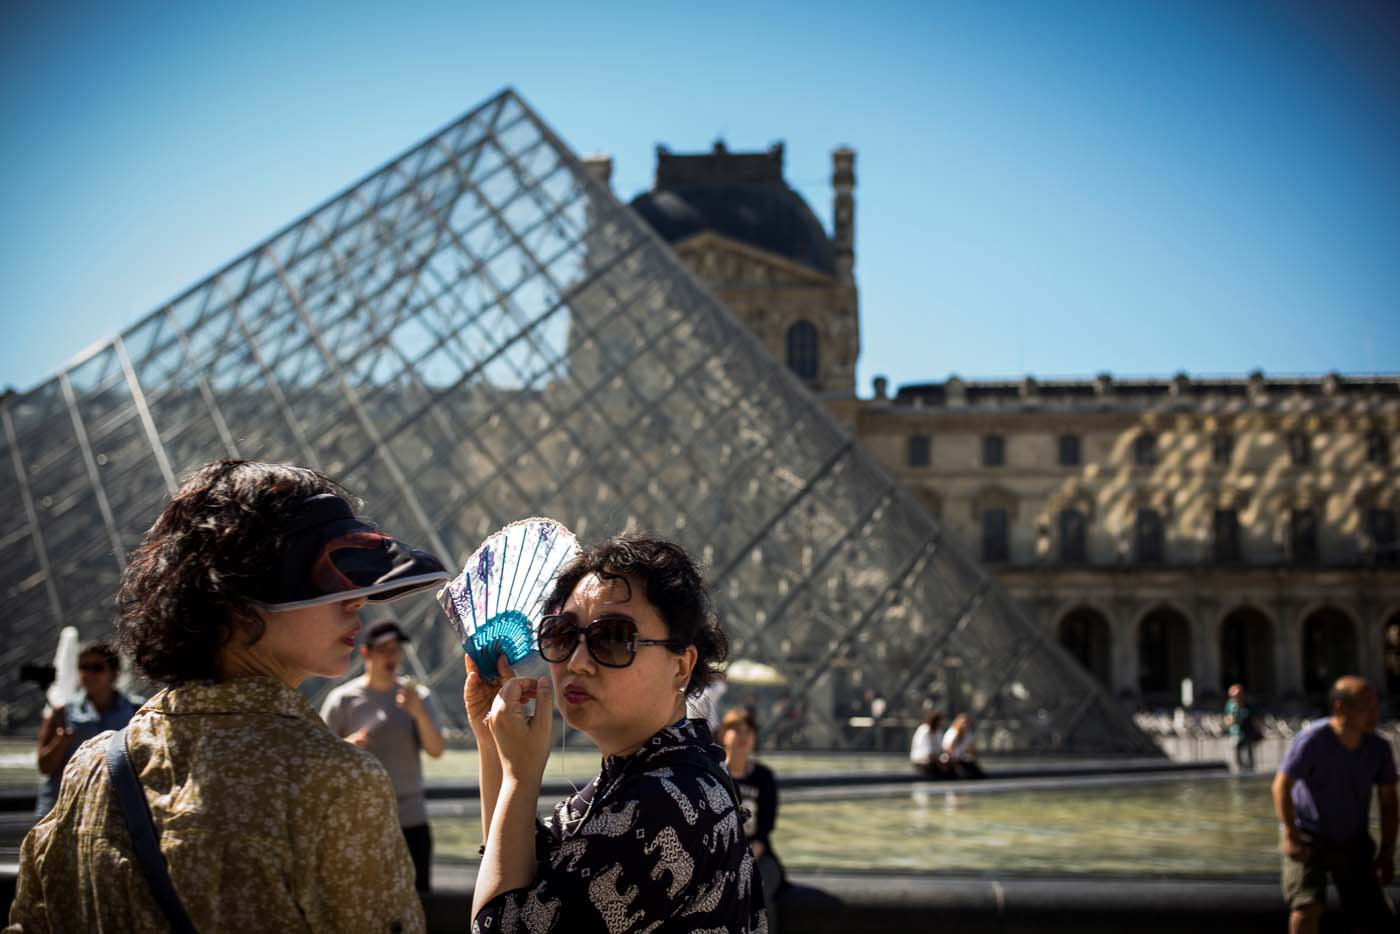 (FILES) This file photo taken on August 25, 2016 shows people standing at the Louvre museum in Paris as temperatures soar across the country. After a decline in 2016 due to the terror attacks in Paris and Nice, tourism in Paris and Ile de France is in much better shape in the first half of 2017, with 1,5 million tourists and 3,3 million overnight stays more than a year ago. / AFP PHOTO / LIONEL BONAVENTURE